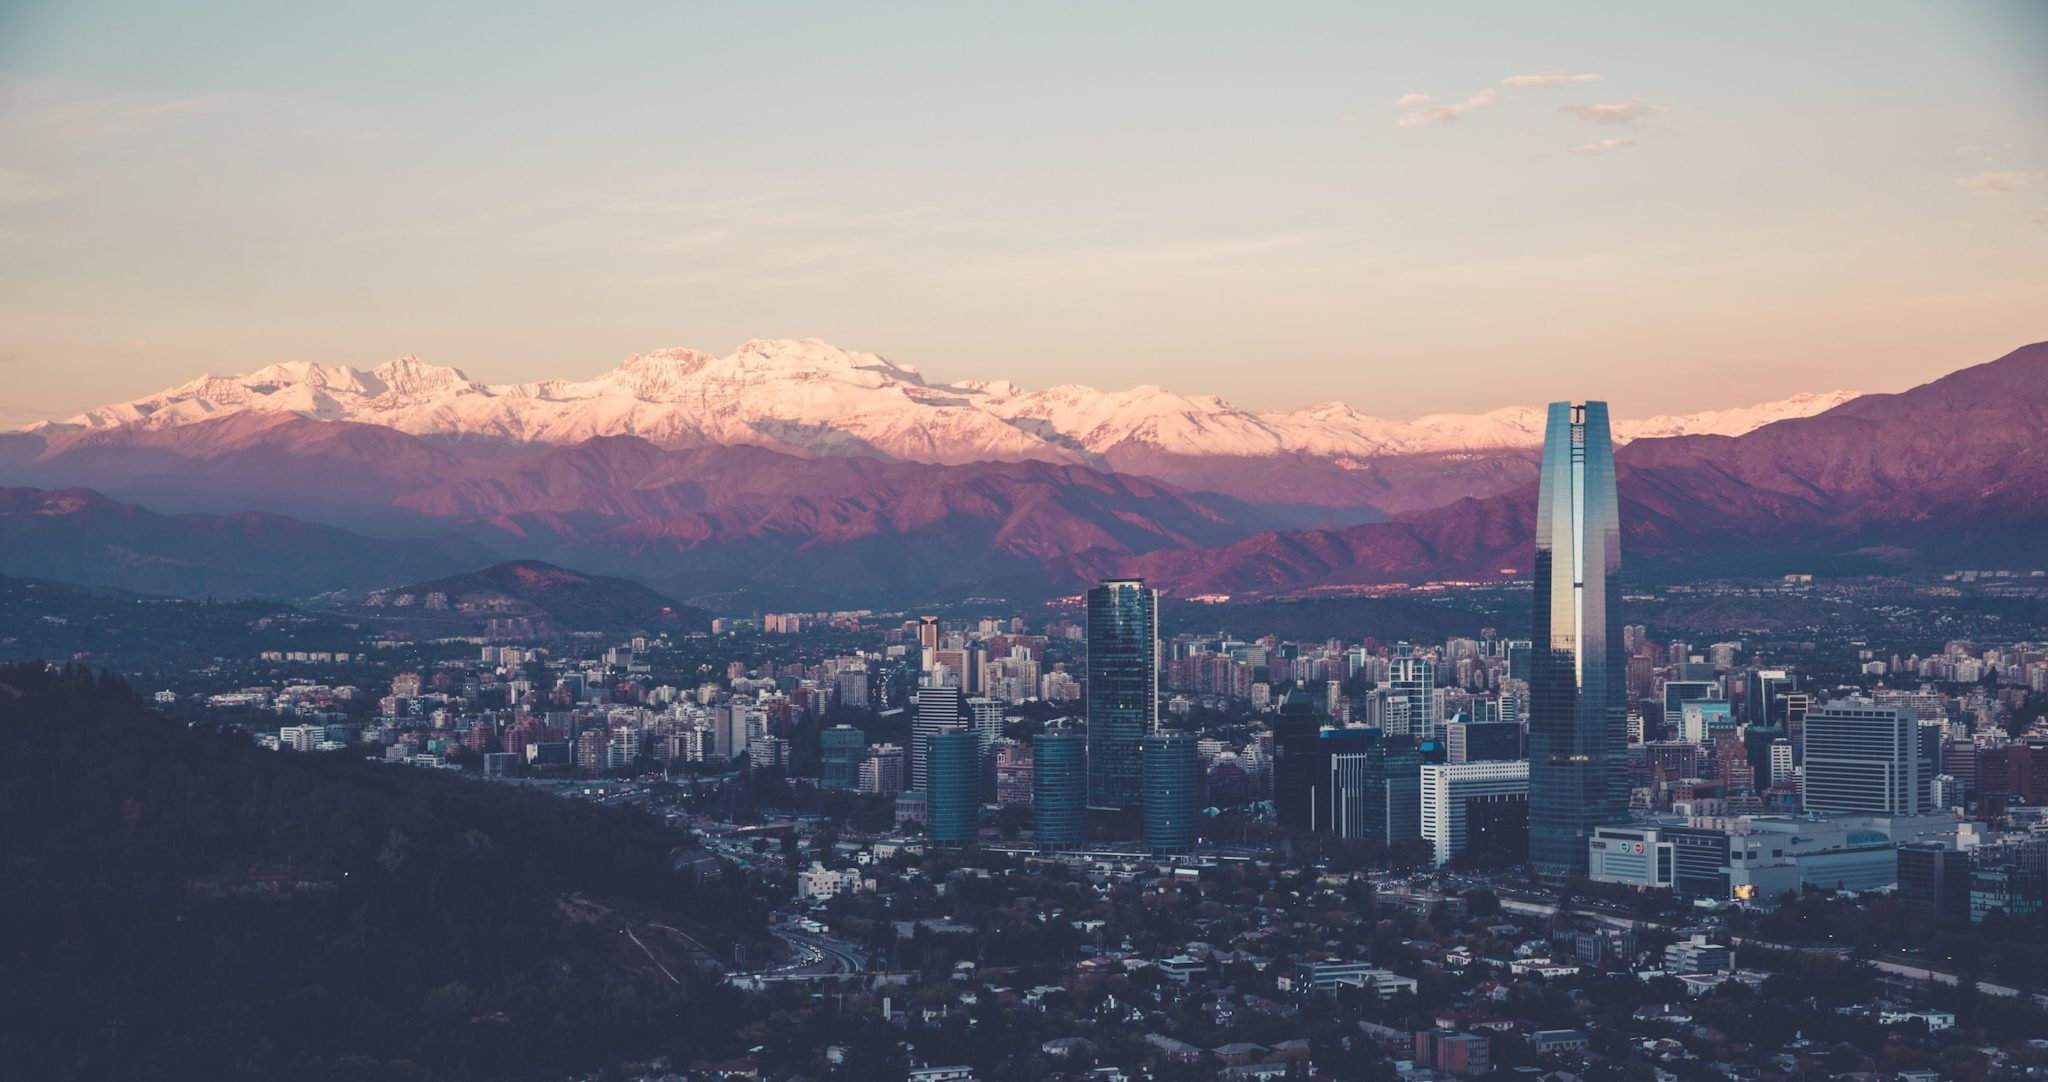 Photo of the Santiago city skyline in Chile with mountains in the background during sunset